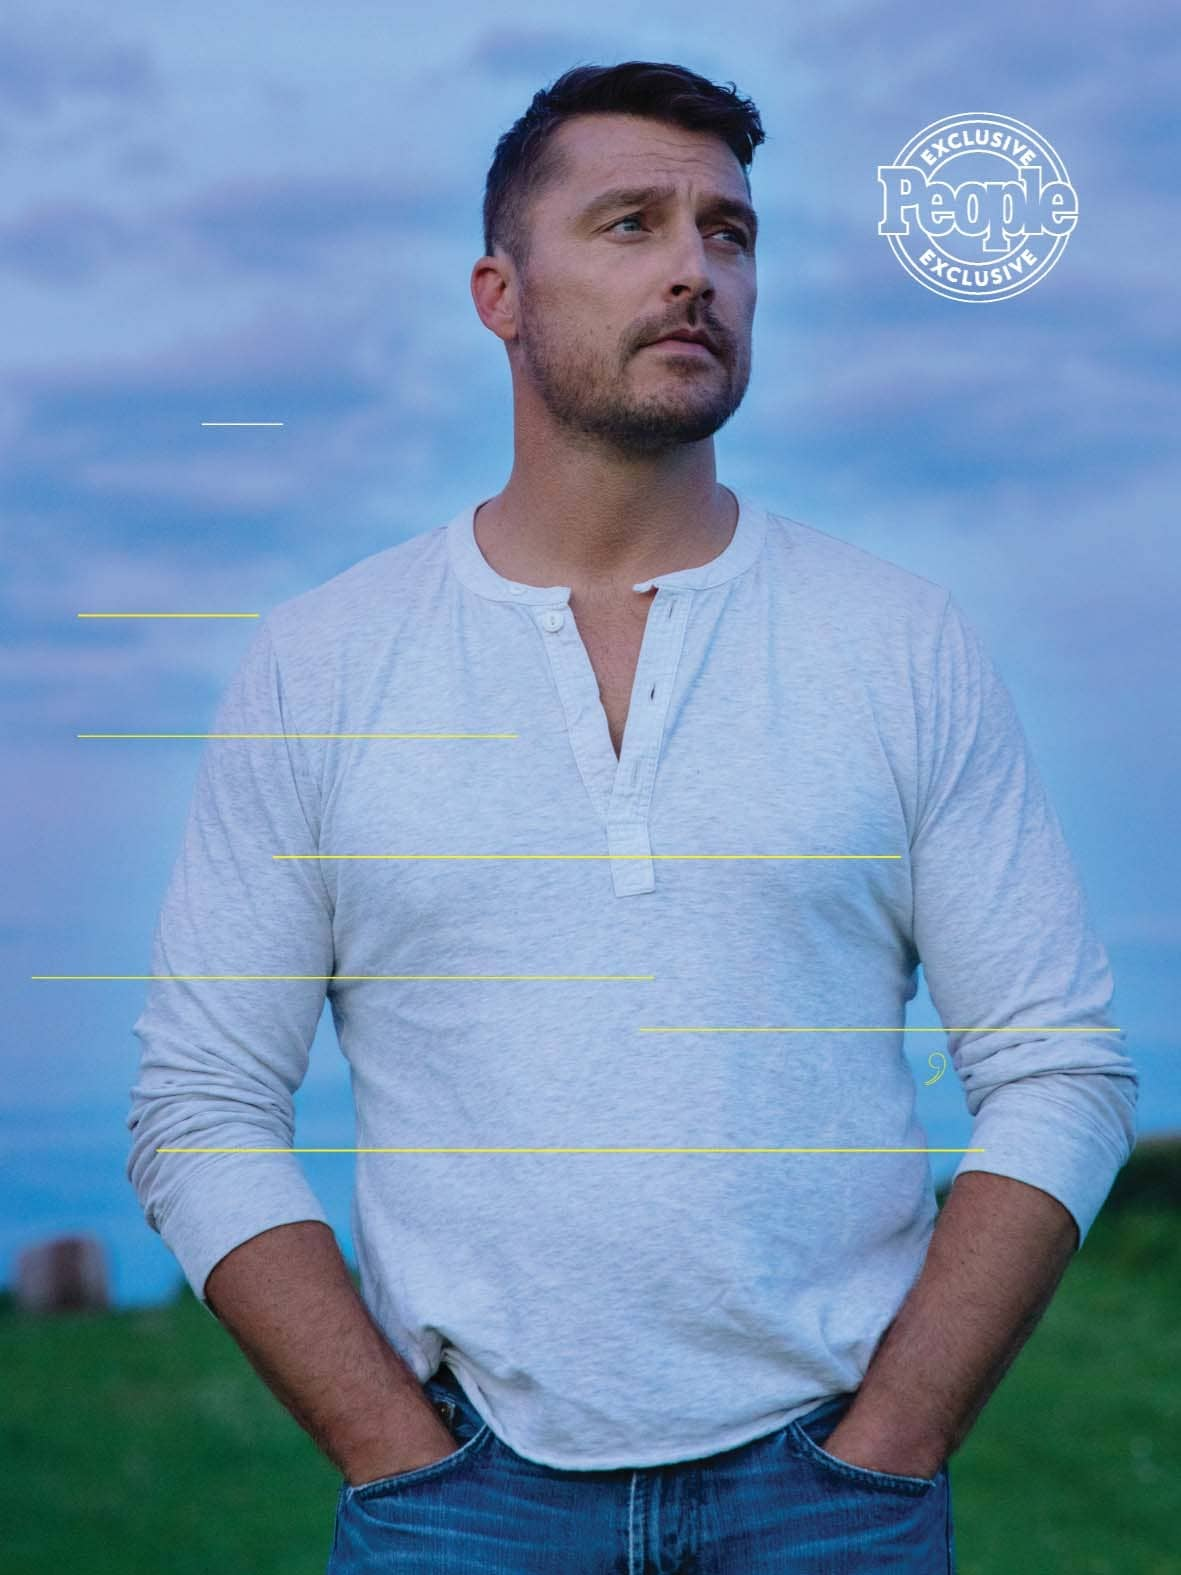 The Bachelor's Chris Soules - 'I Wish I Could Change What Happened'